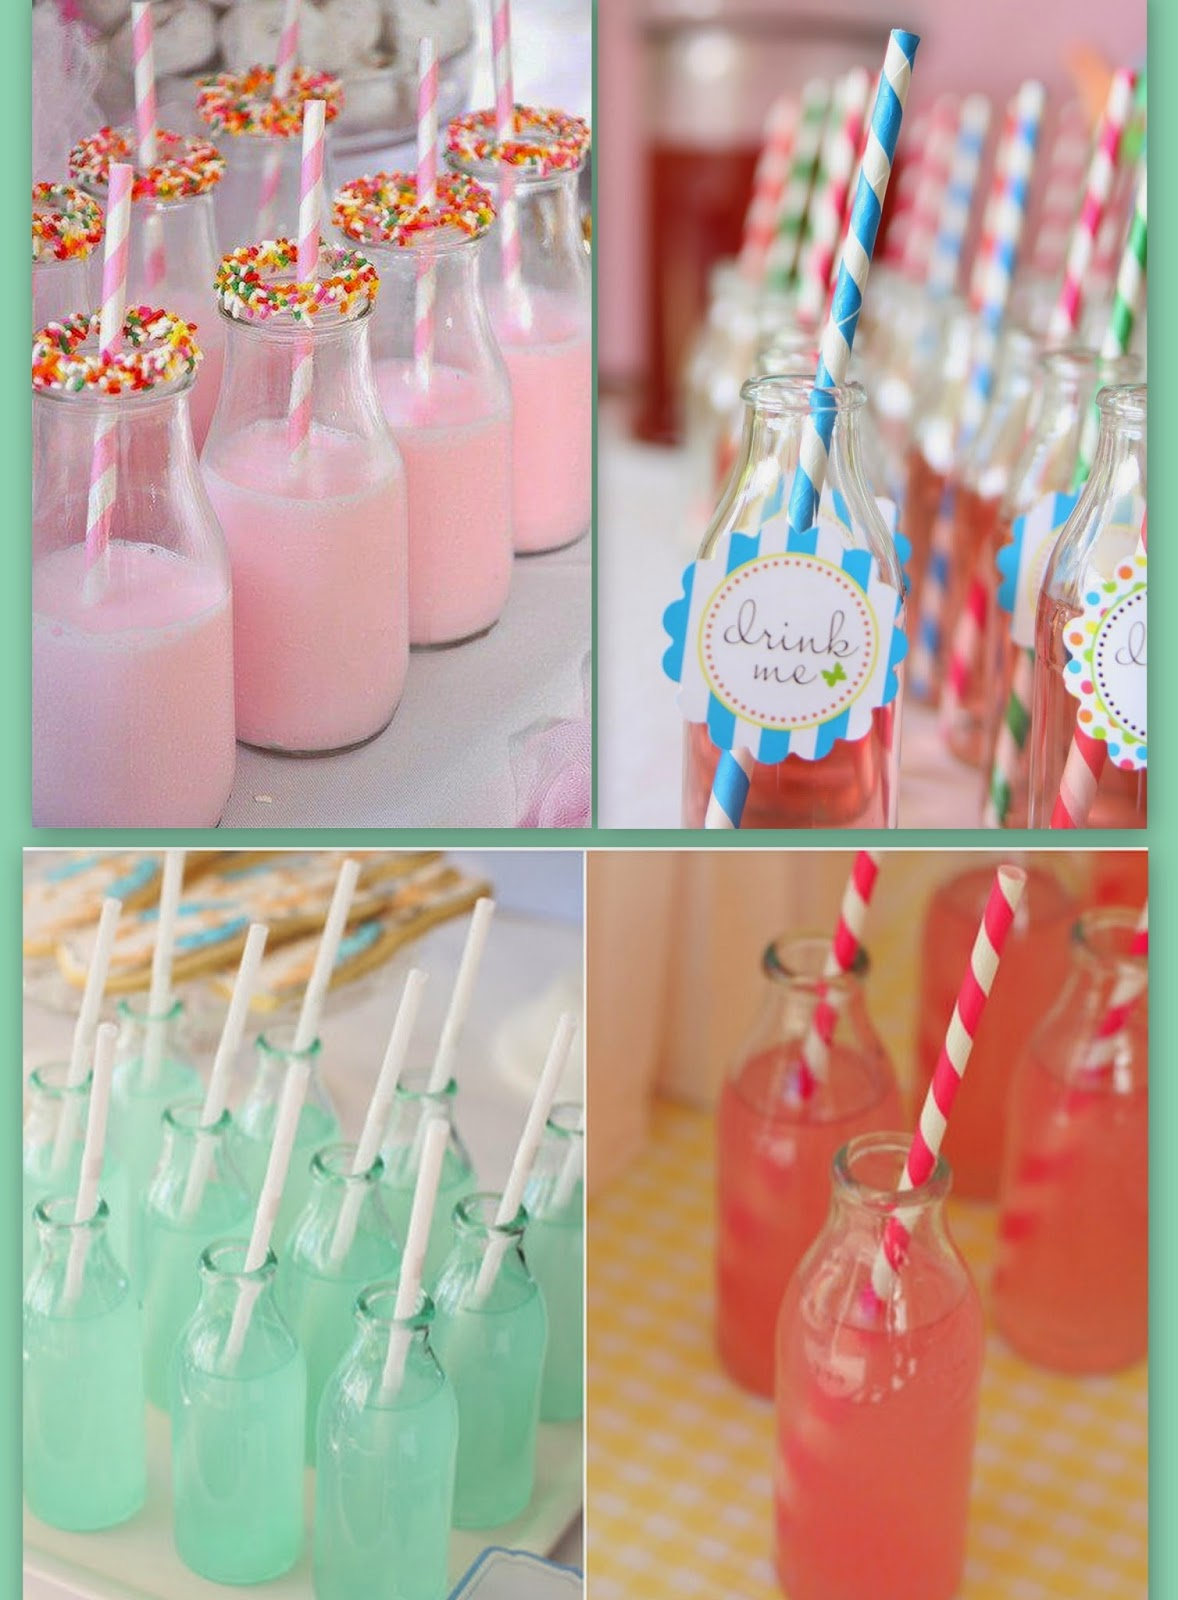 Home kids inspiraci n y creatividad ideas para decorar for Decorar garrafas de cristal